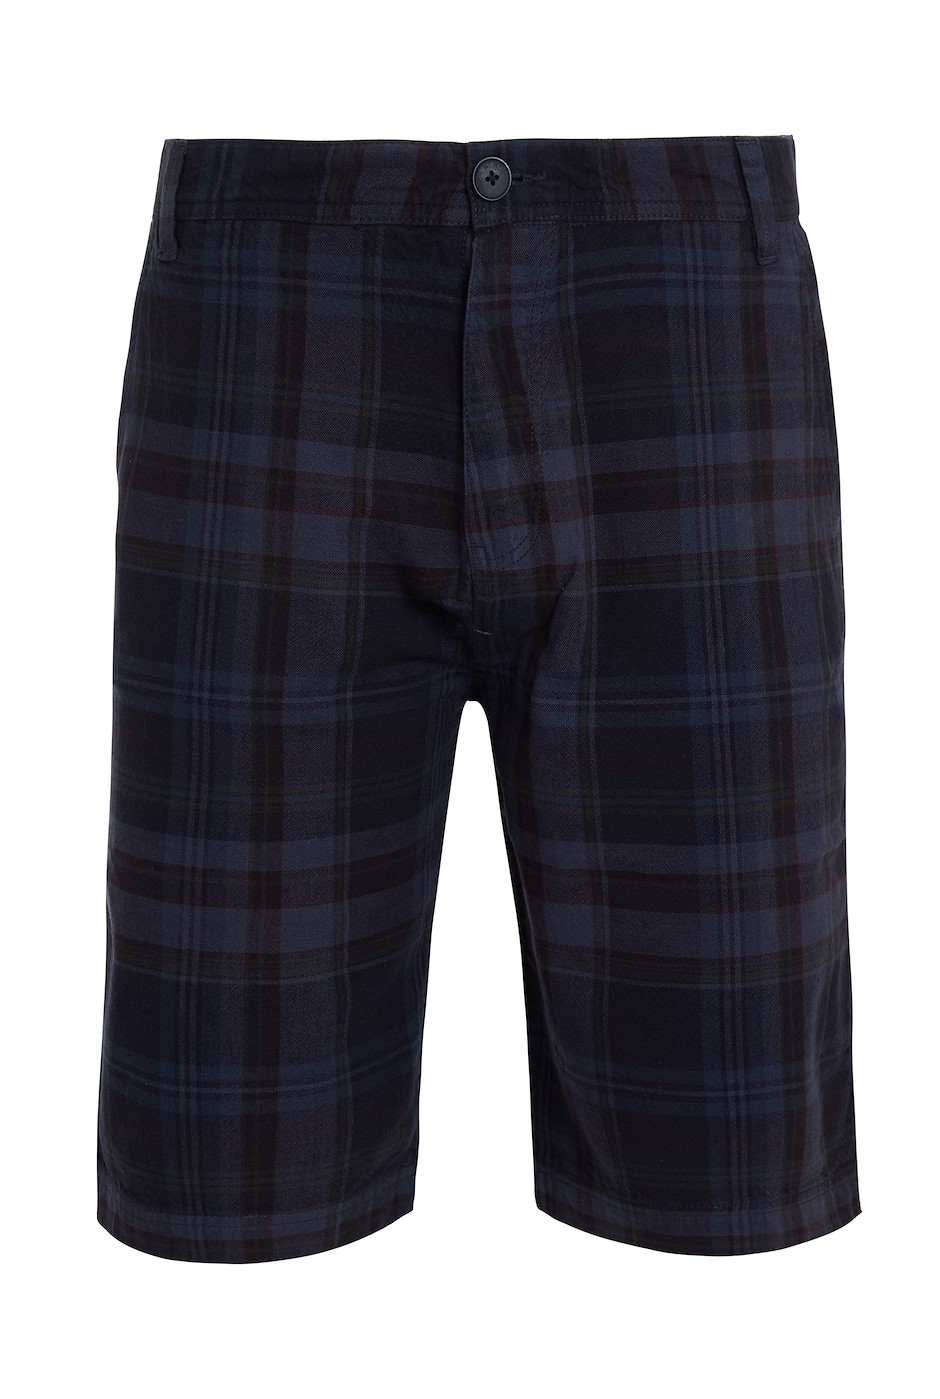 Cuburt Check Shorts Navy